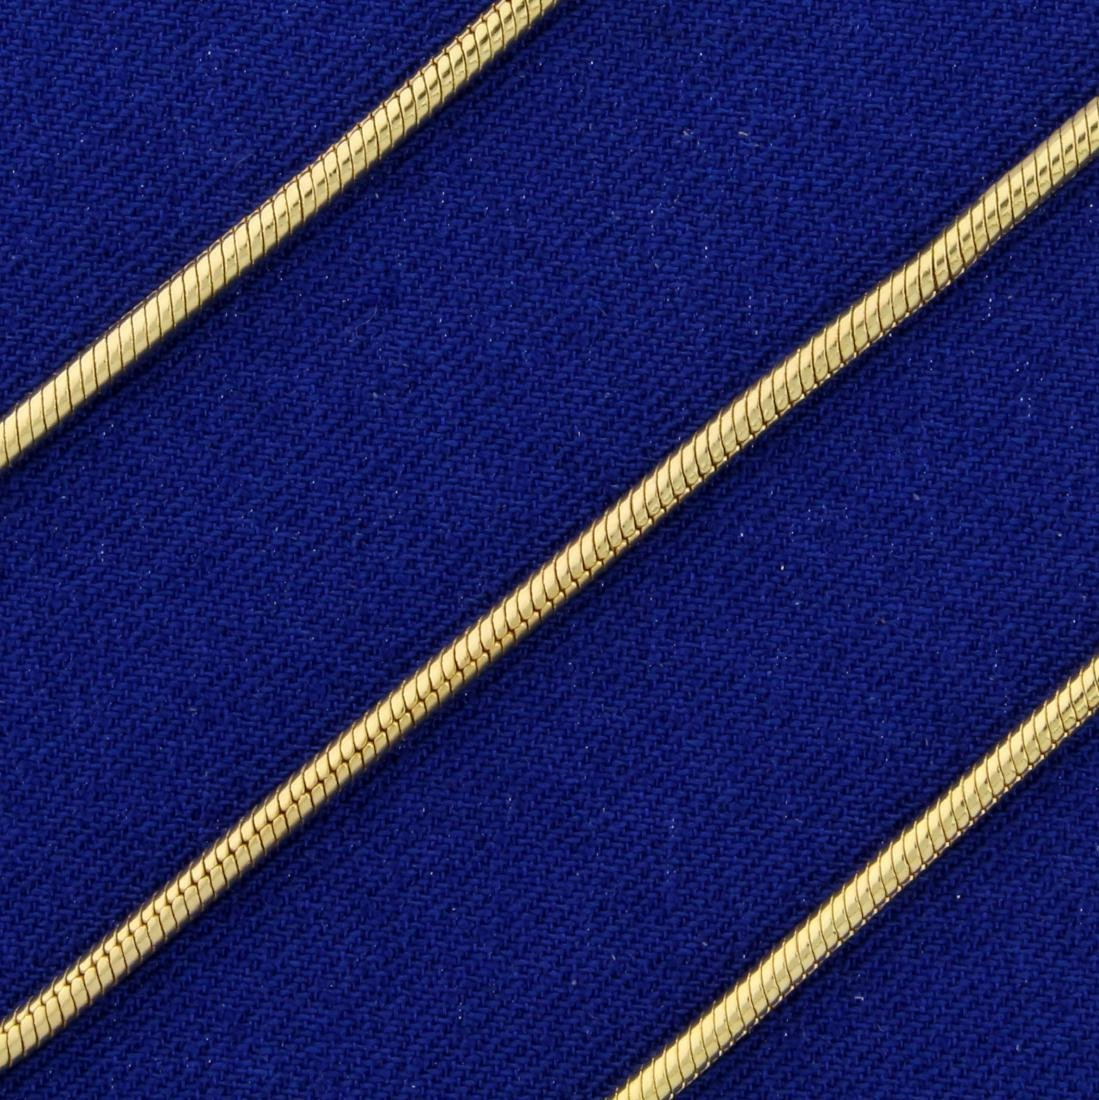 Italian Made 20 Inch Snake Link Necklace in 14K Yellow - 2